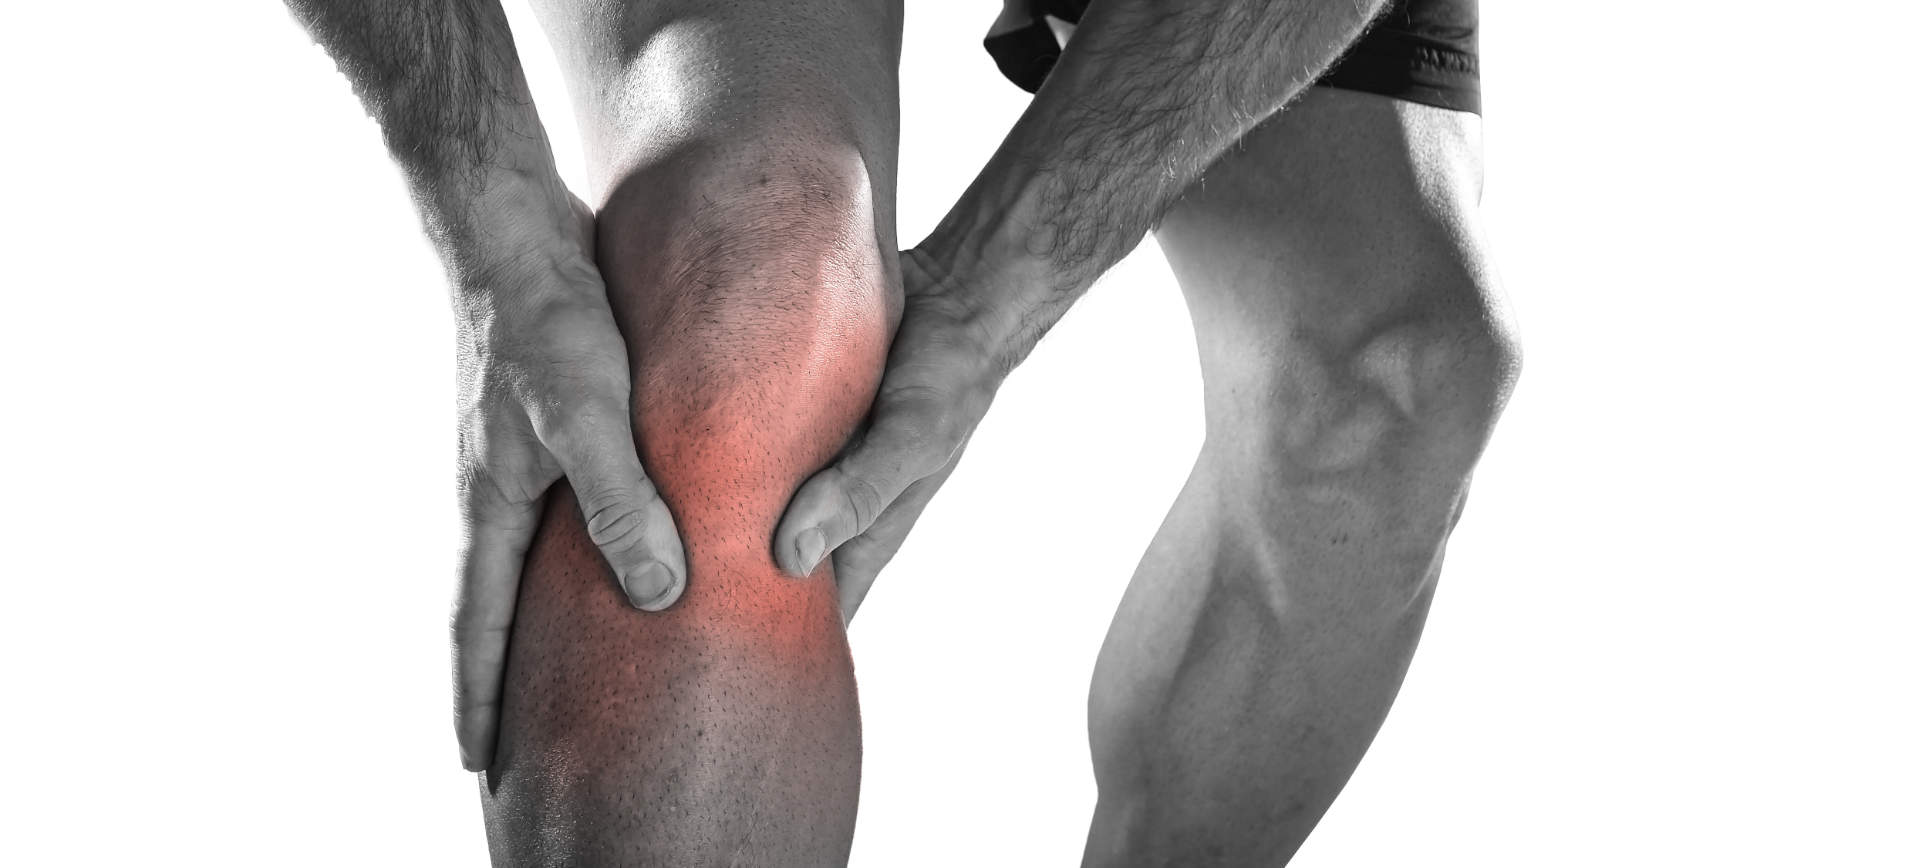 Knee Pain and Injuries Treatment in Morgan Hill